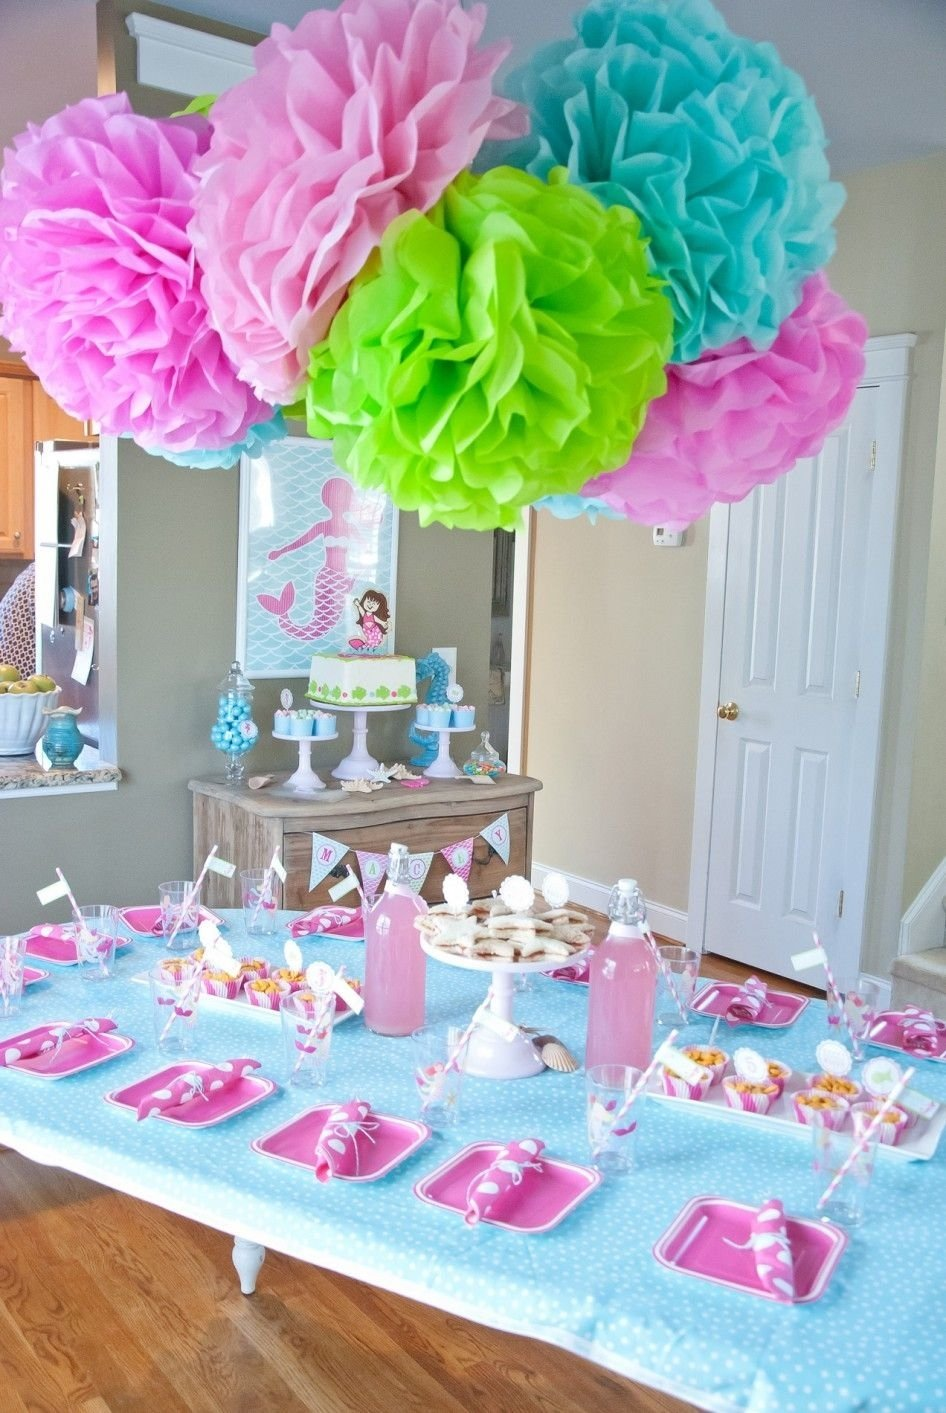 10 Perfect Table Decoration Ideas For Parties amusing birthday party table decoration ideas with birthday party